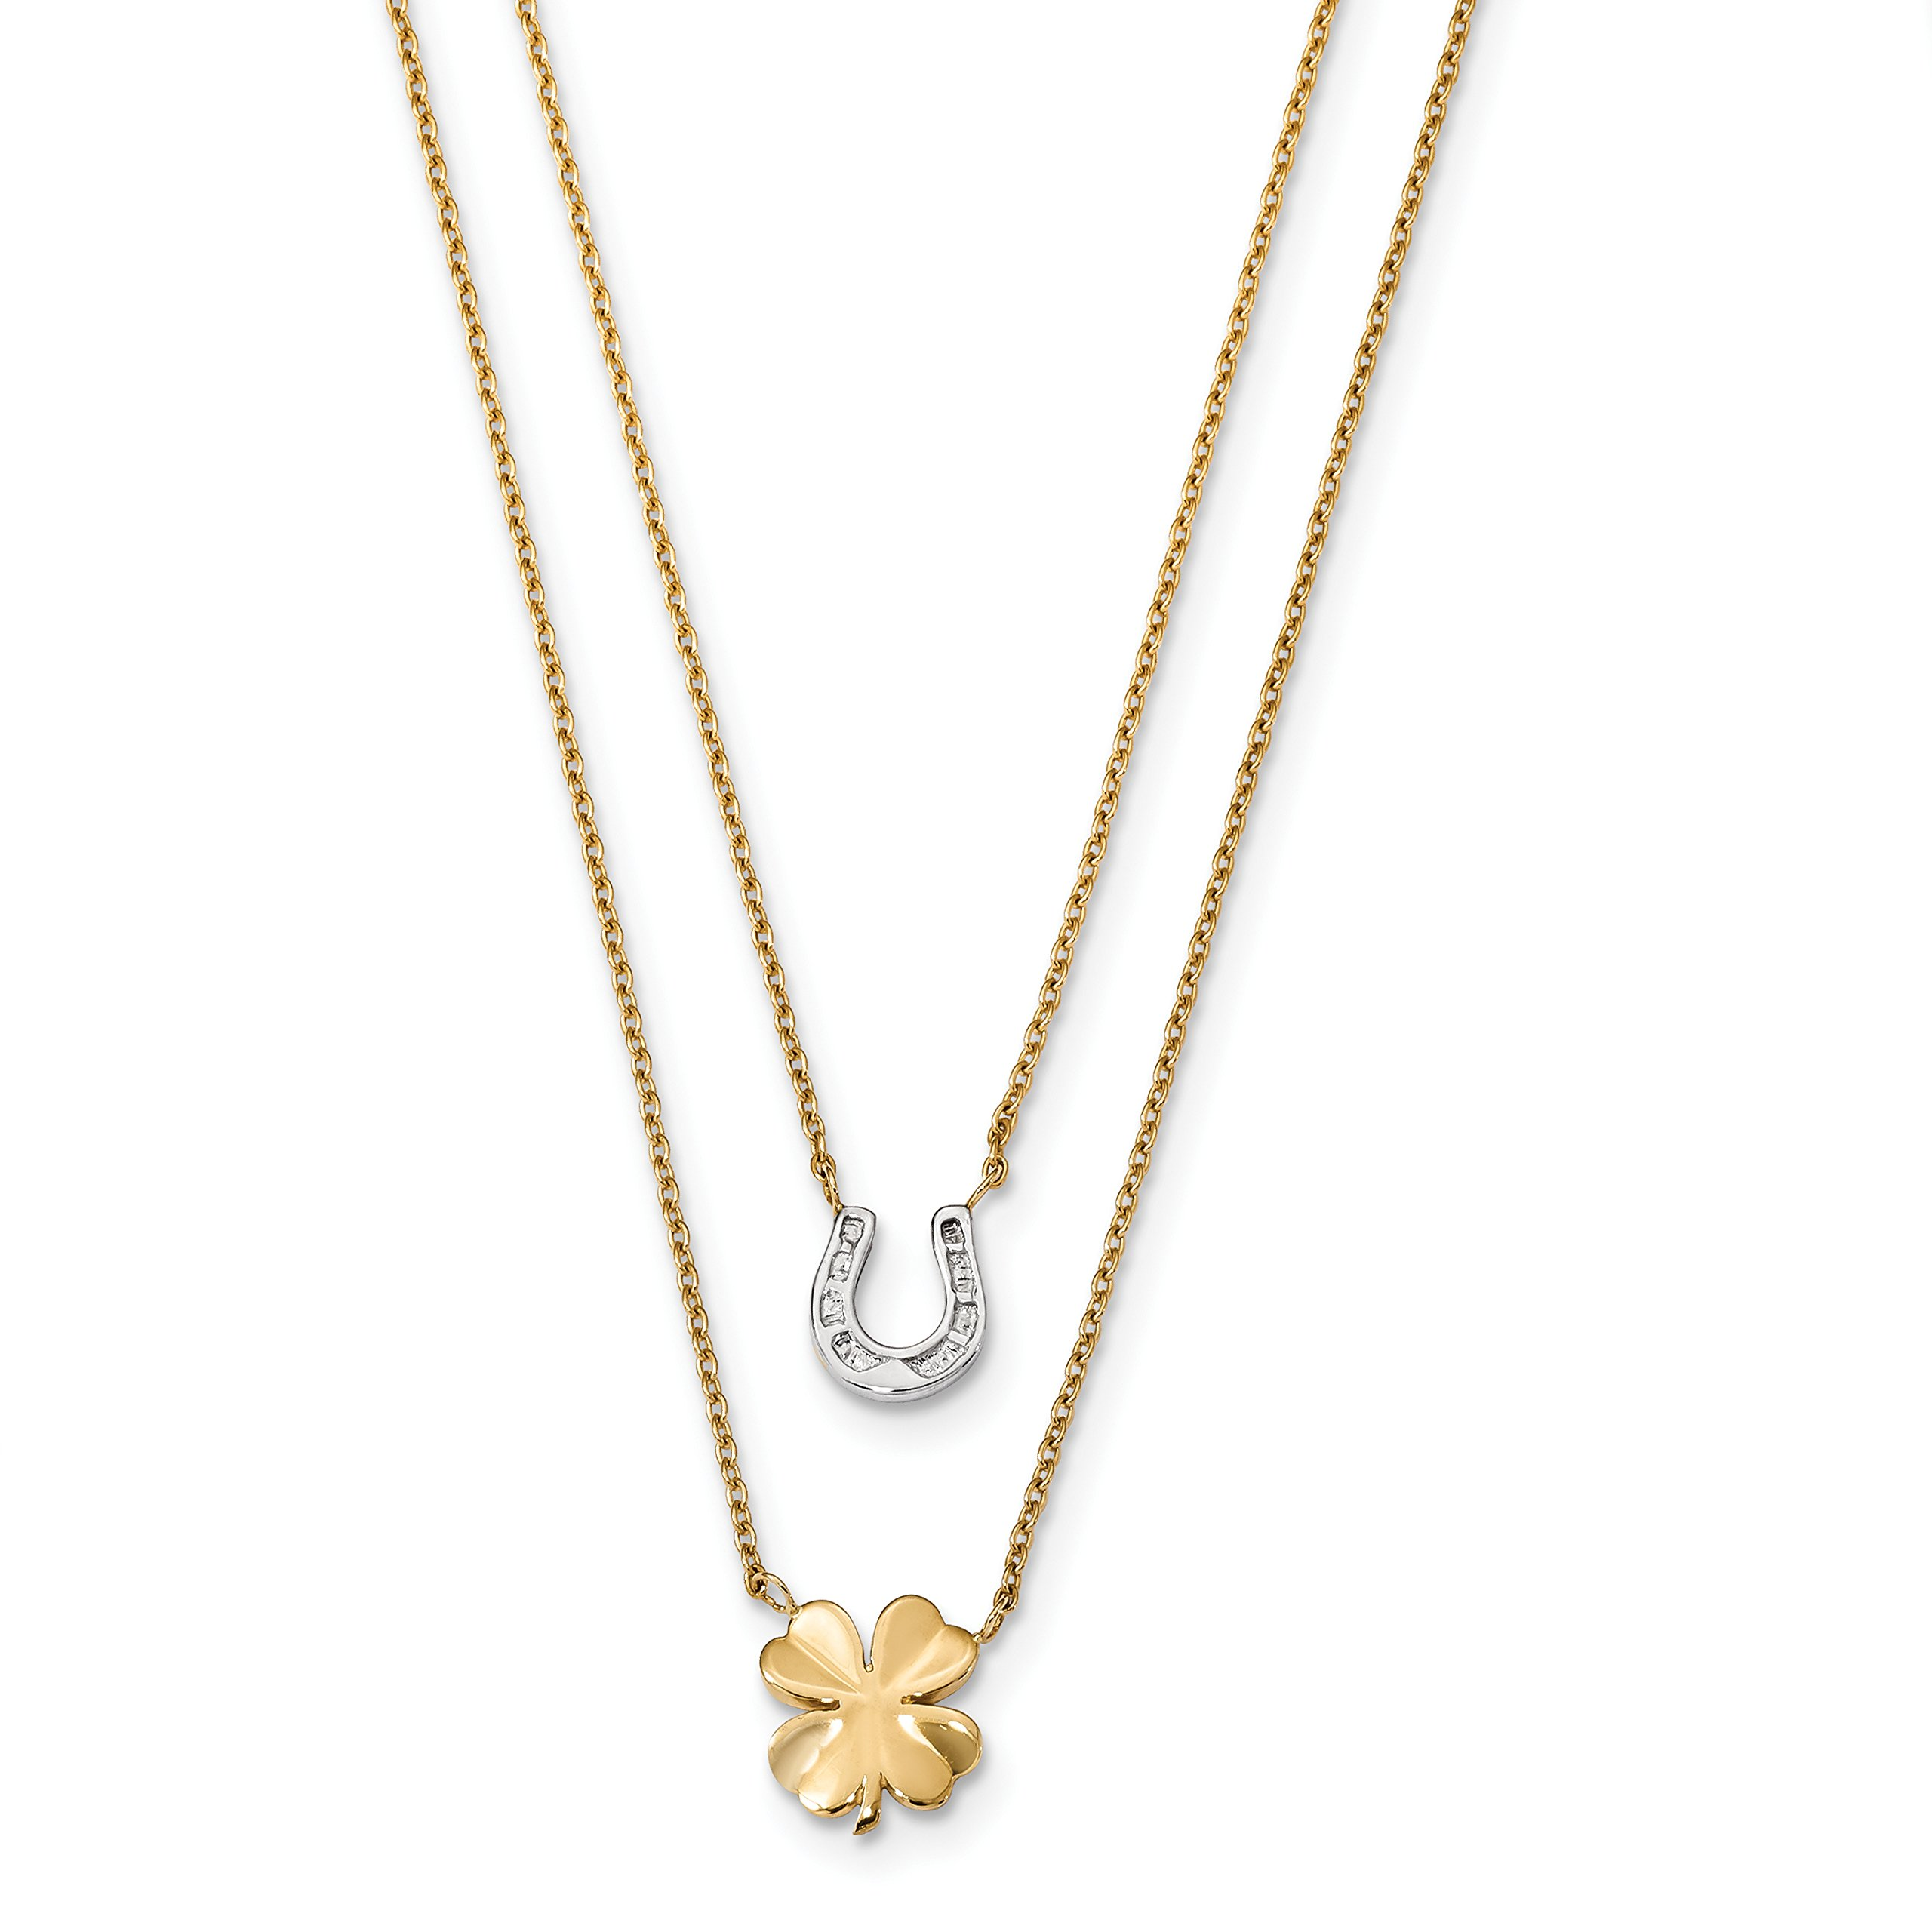 ICE CARATS 14k Two Tone Yellow Gold 2 Strand Clover Horseshoe Chain Necklace Fancy Good Luck/italian Horn Fine Jewelry Gift Set For Women Heart